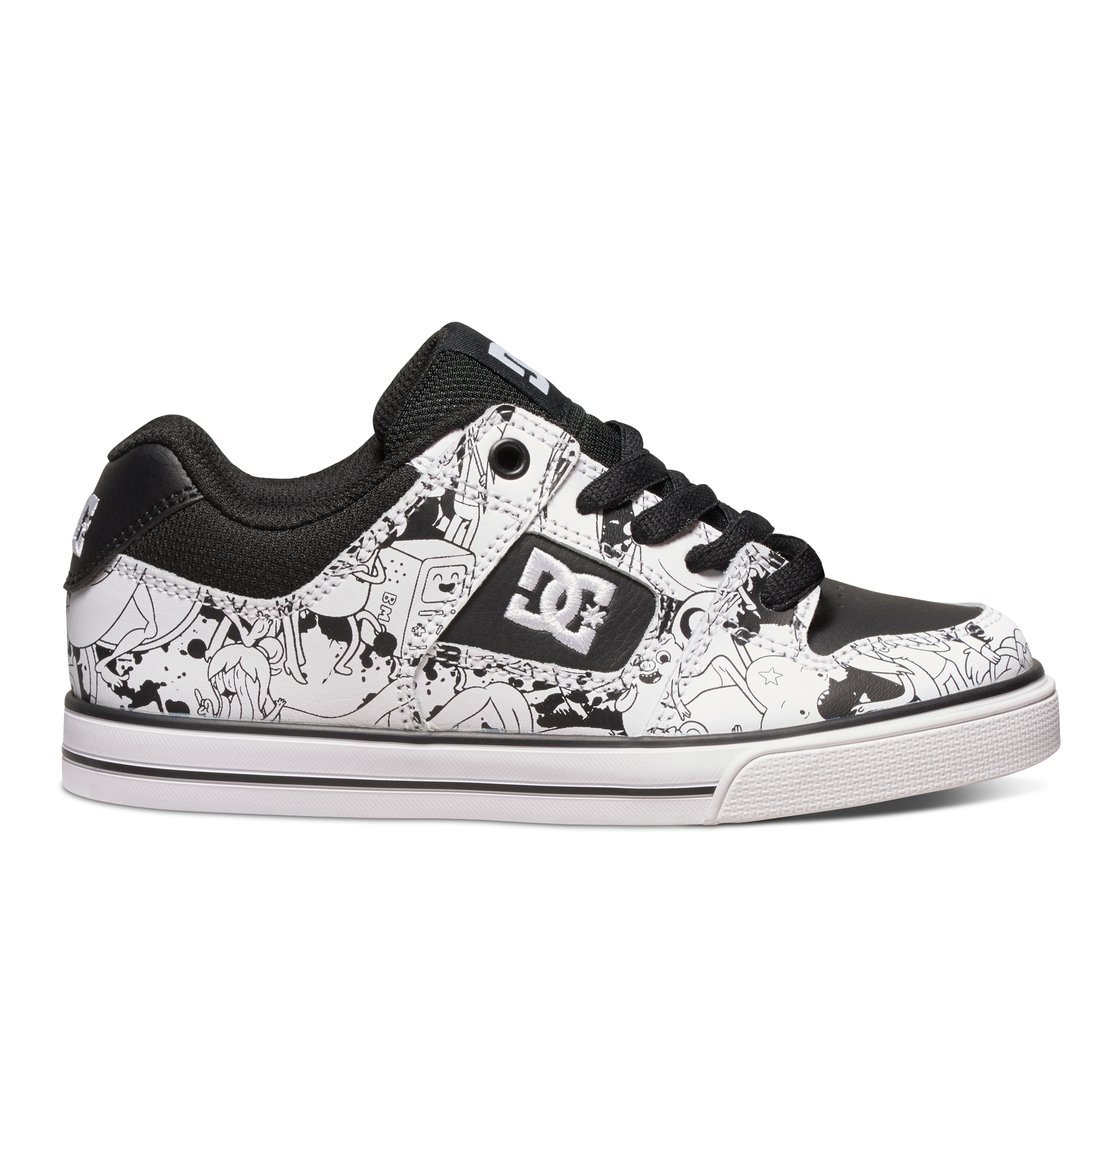 Old Style Dc Shoes For Sale